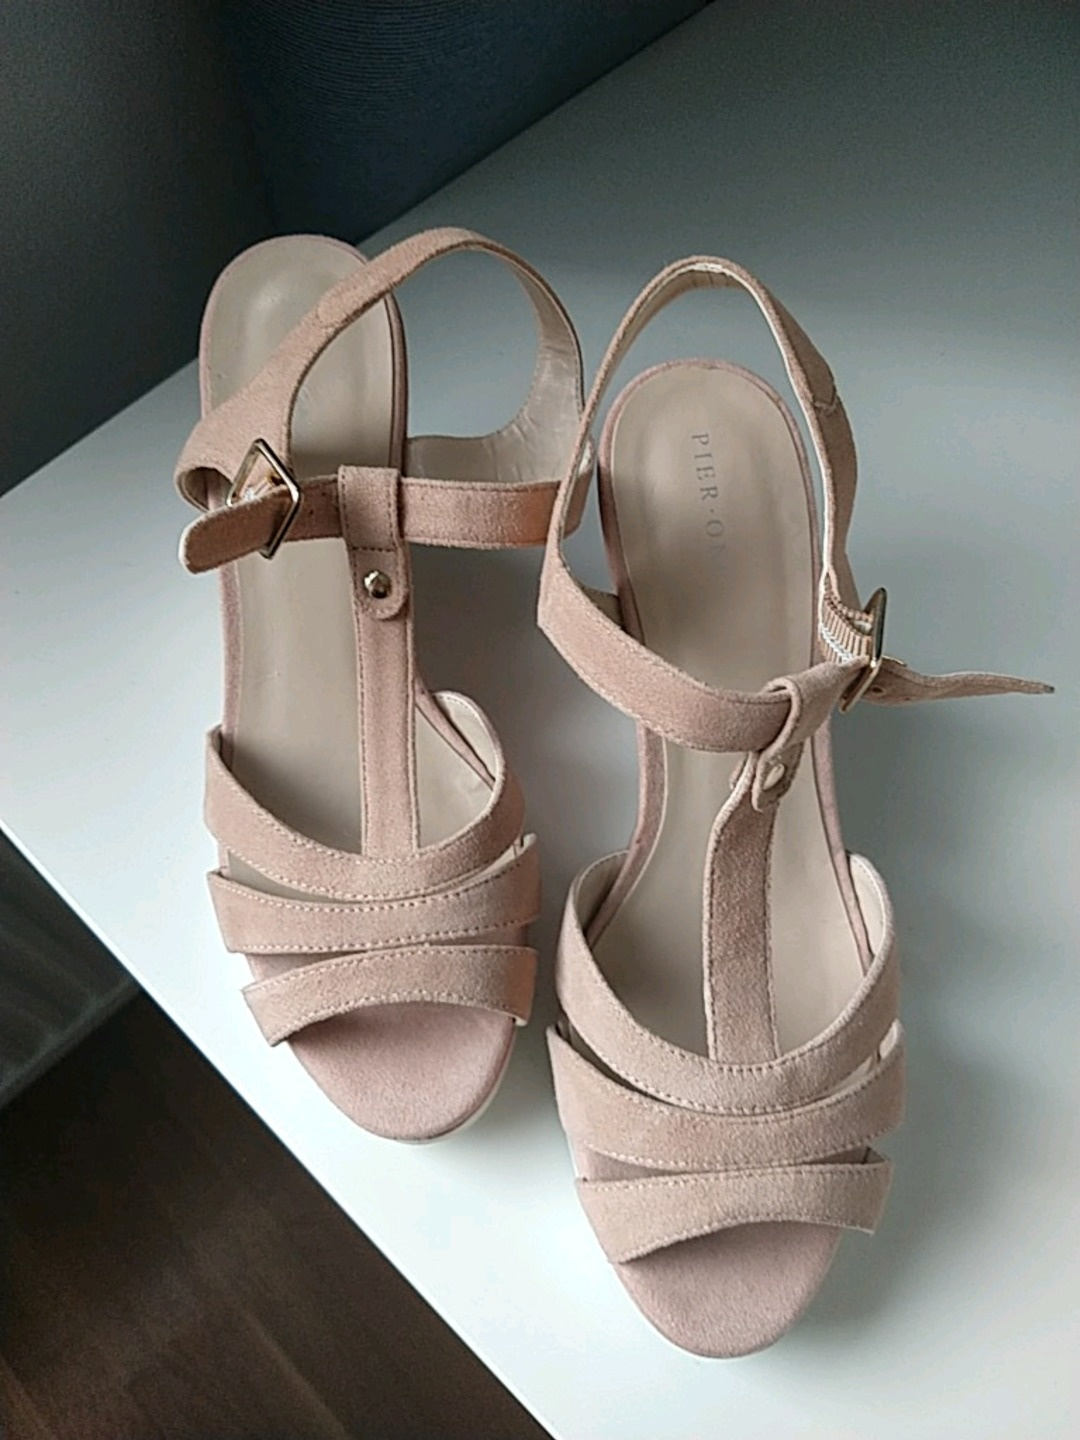 Women's sandals & slippers - PIER ONE photo 3